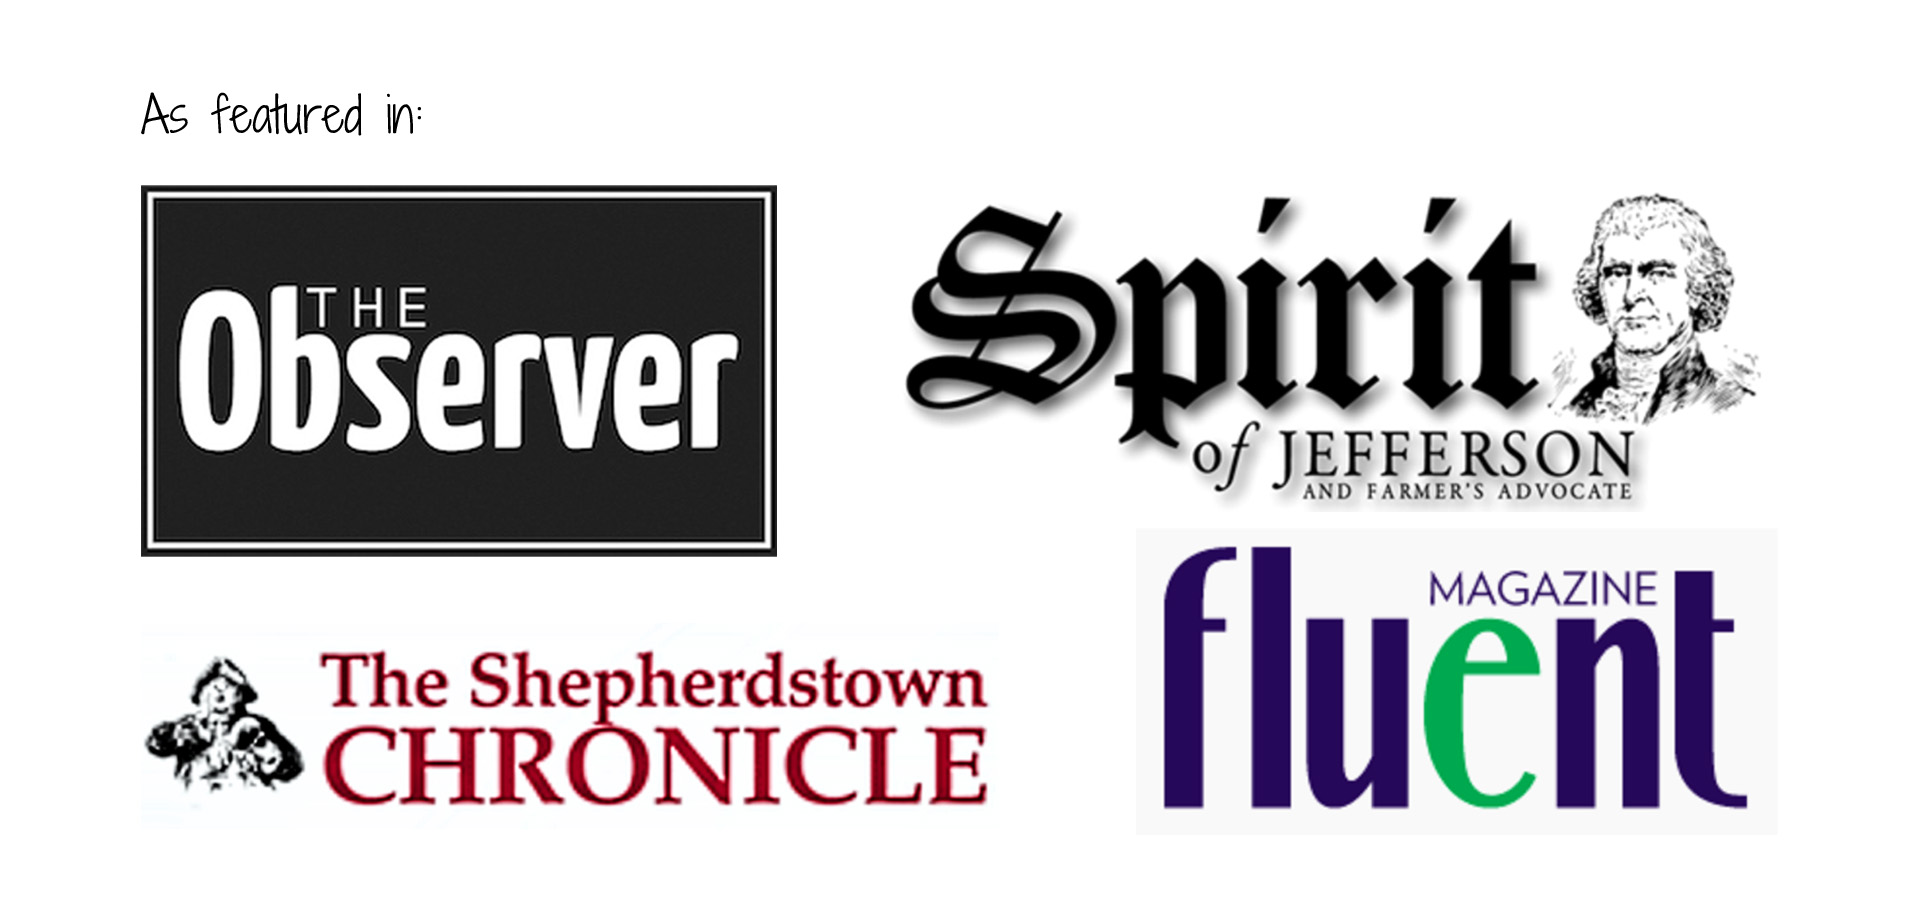 Julia Springer has been featured in the WV Observer, the Shepherdstown Chronicle, the Spirit of Jefferson, and Fluent Magazine